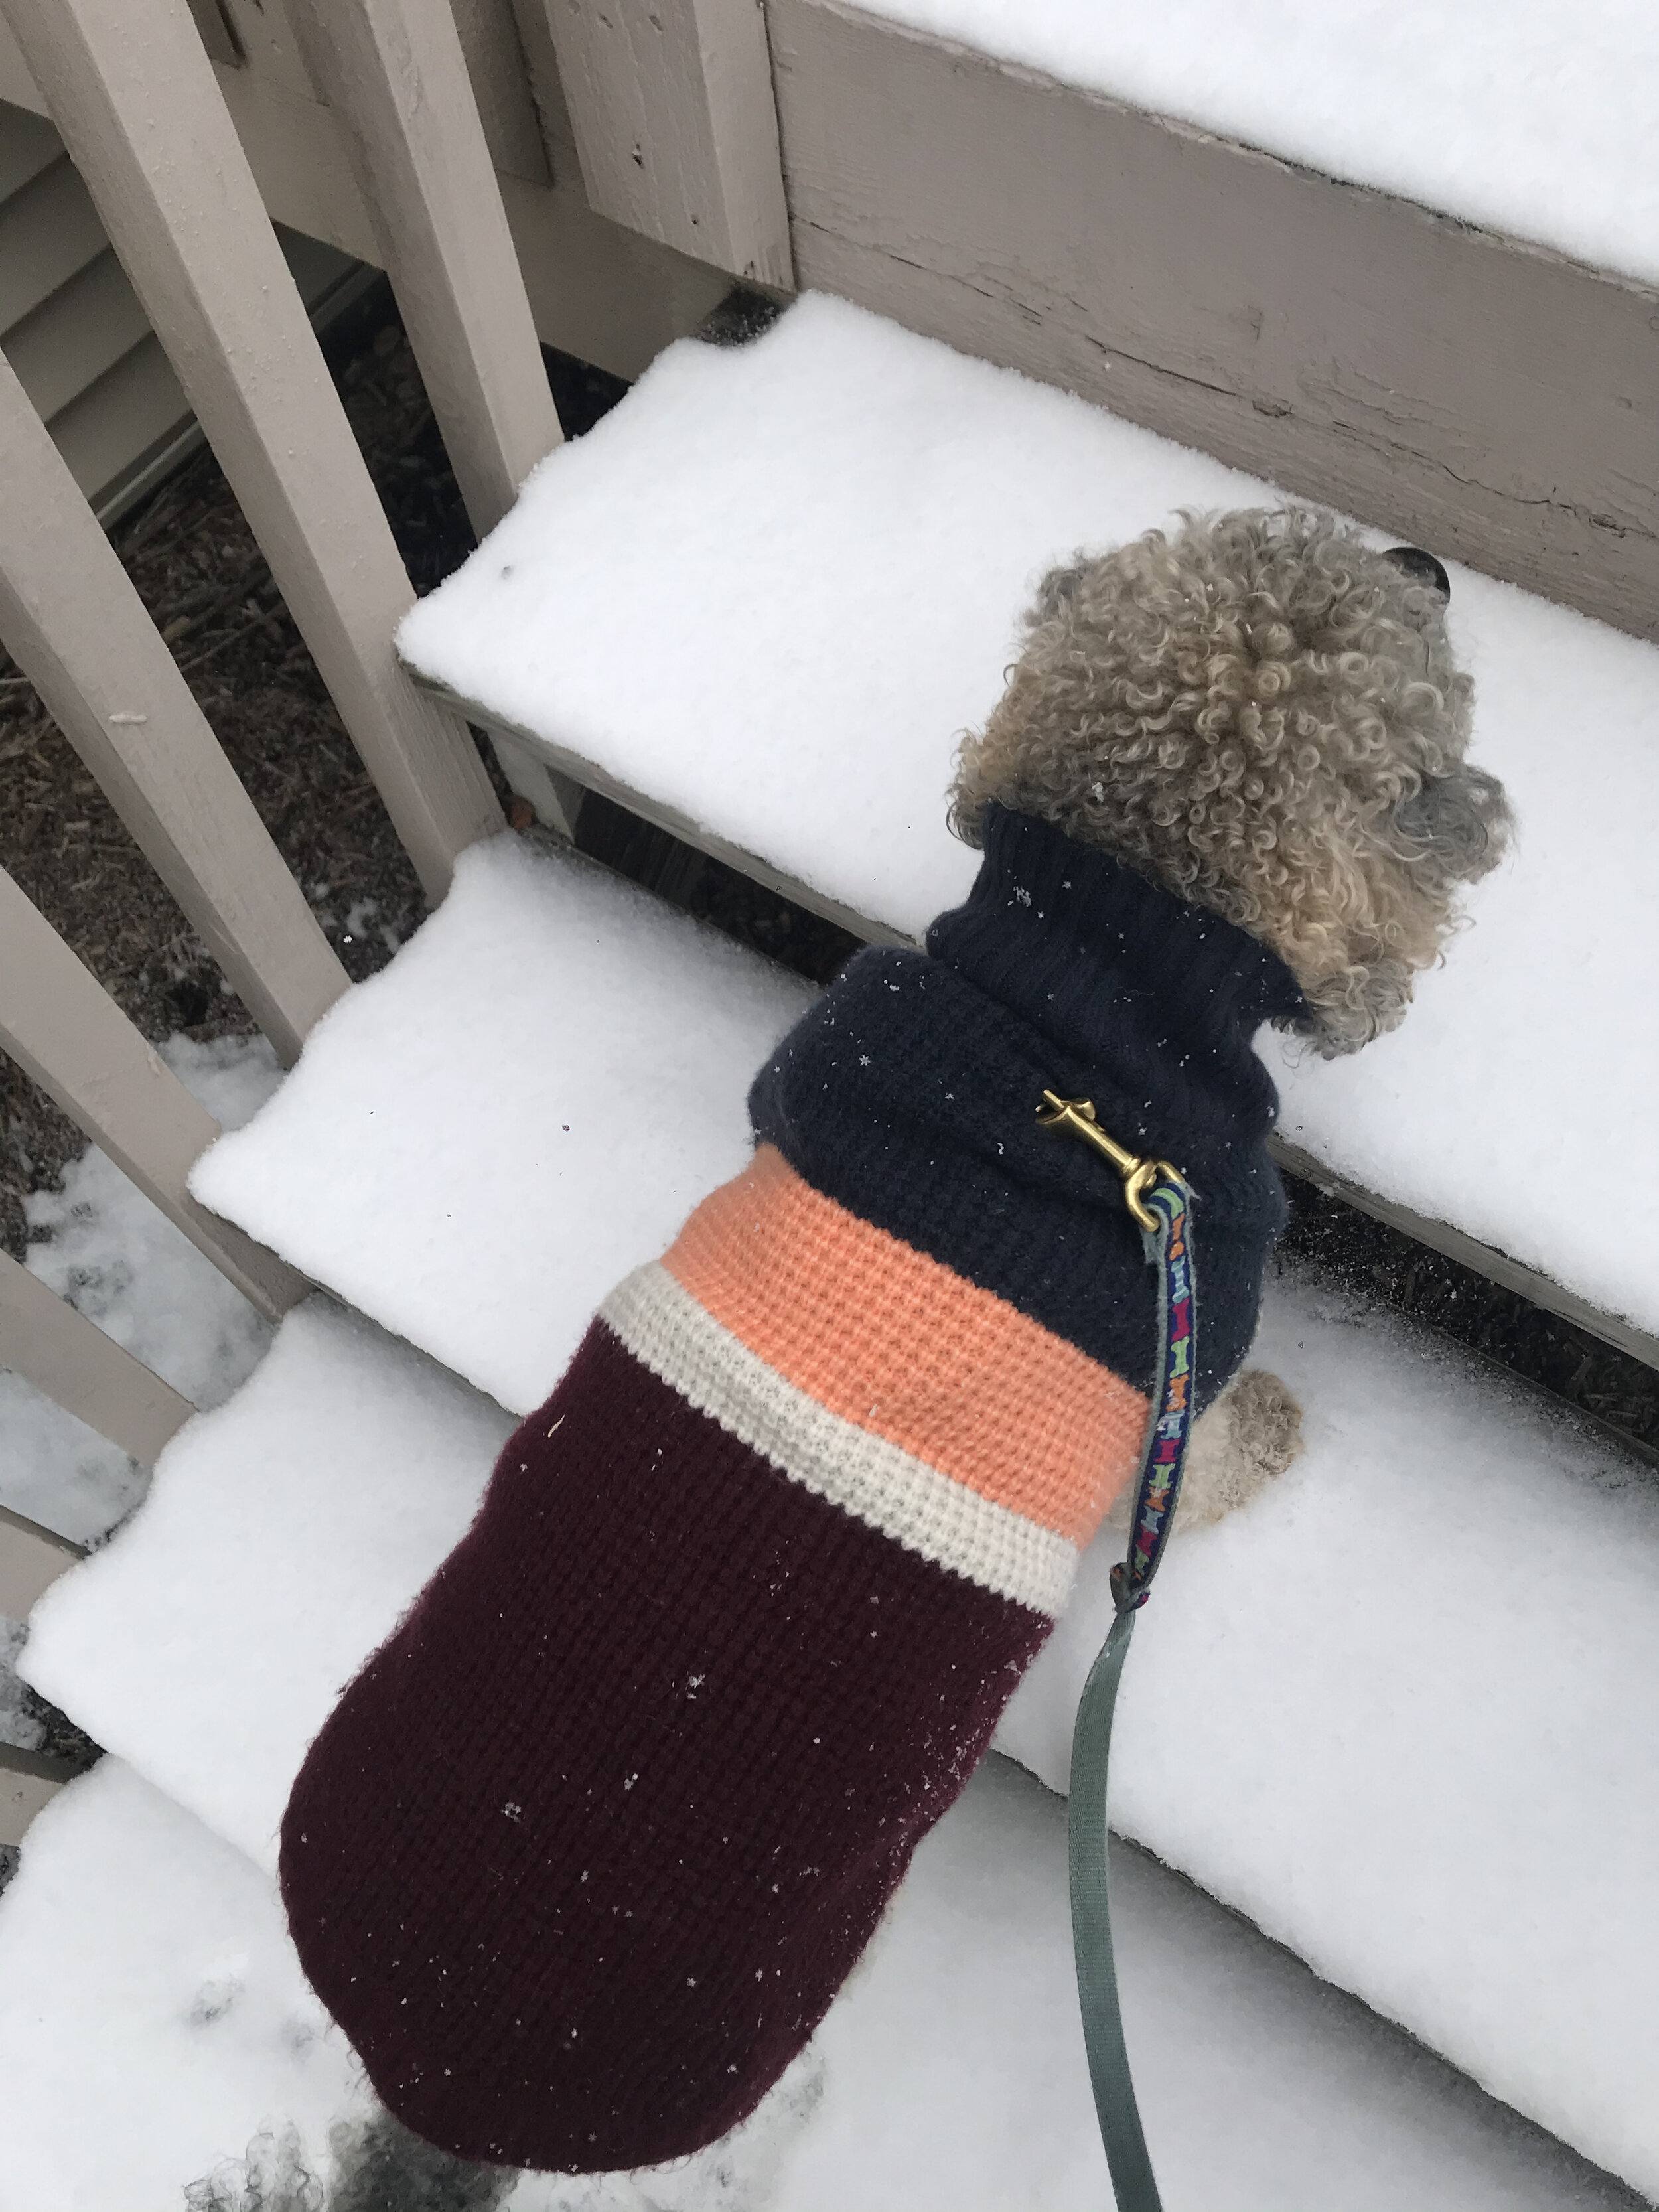 How to be active with dogs during winter